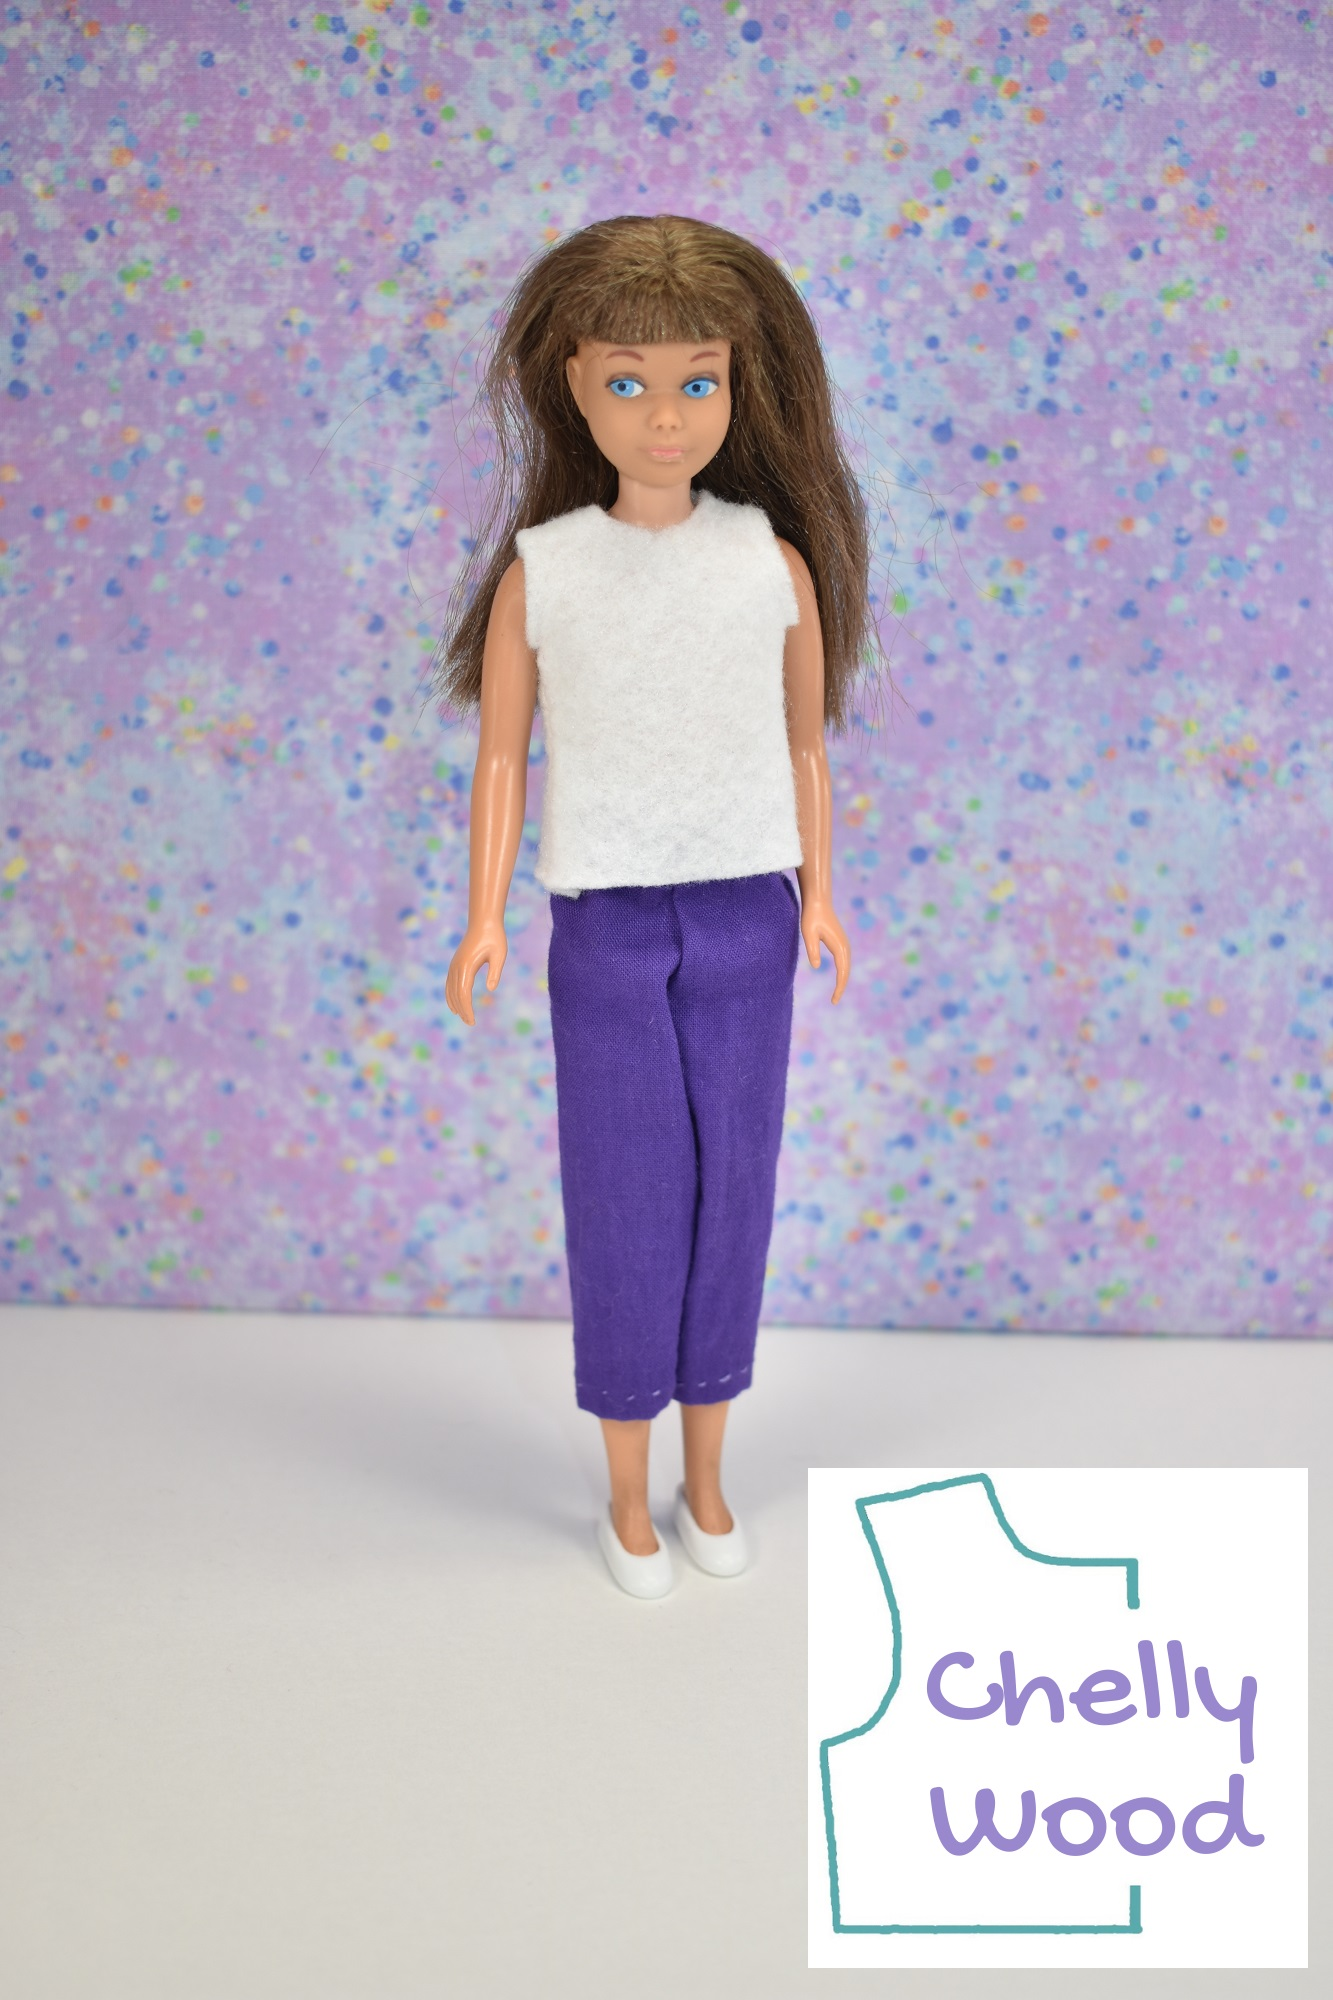 In this photo, we see a brunette vintage Skipper doll modeling hand made doll clothes: a pair of pedal pusher pants or capris and a felt shirt. She also wears plastic shoes. The doll faces toward the camera with slightly right-glancing eyes. In the lower right hand corner is the Chelly Wood logo, indicating that the free printable PDF sewing patterns and tutorial videos for making these doll clothes can be found at ChellyWood.com